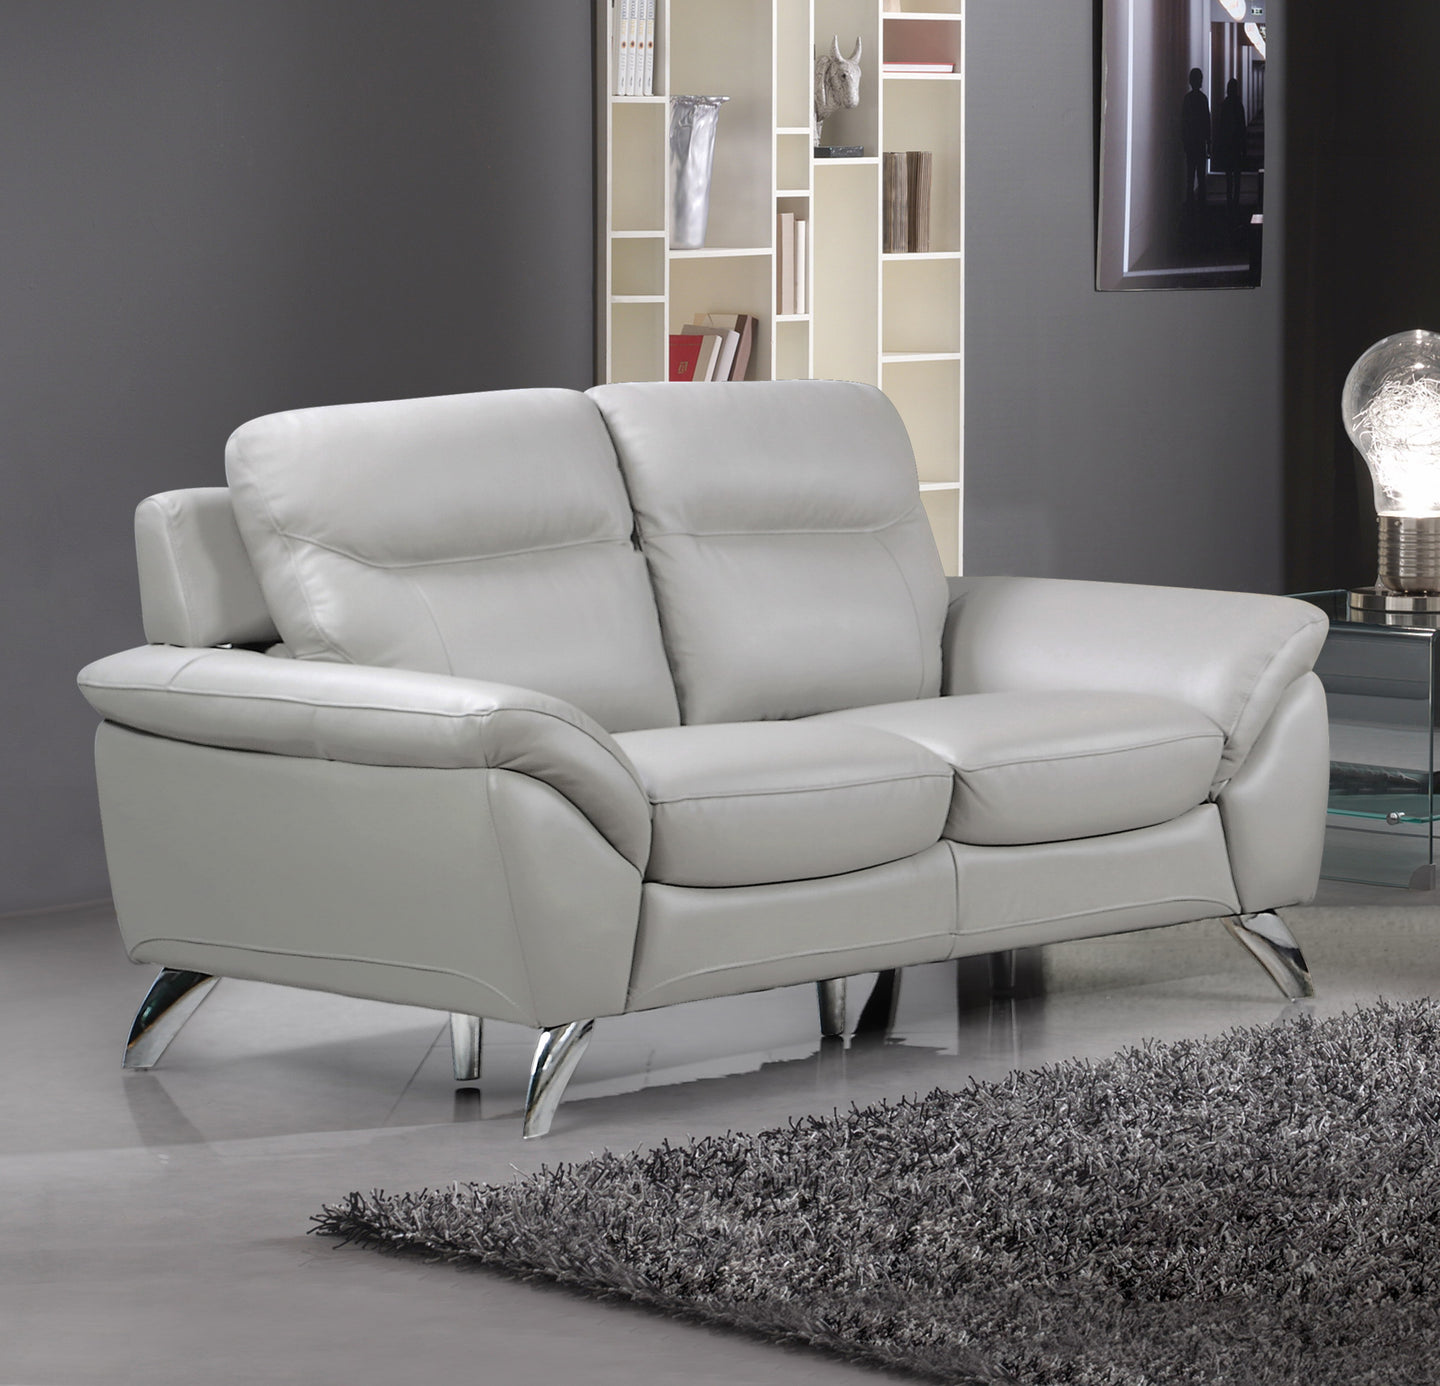 Cortesi Home Contemporary Monaco Genuine Leather Loveseat, Light Grey 60